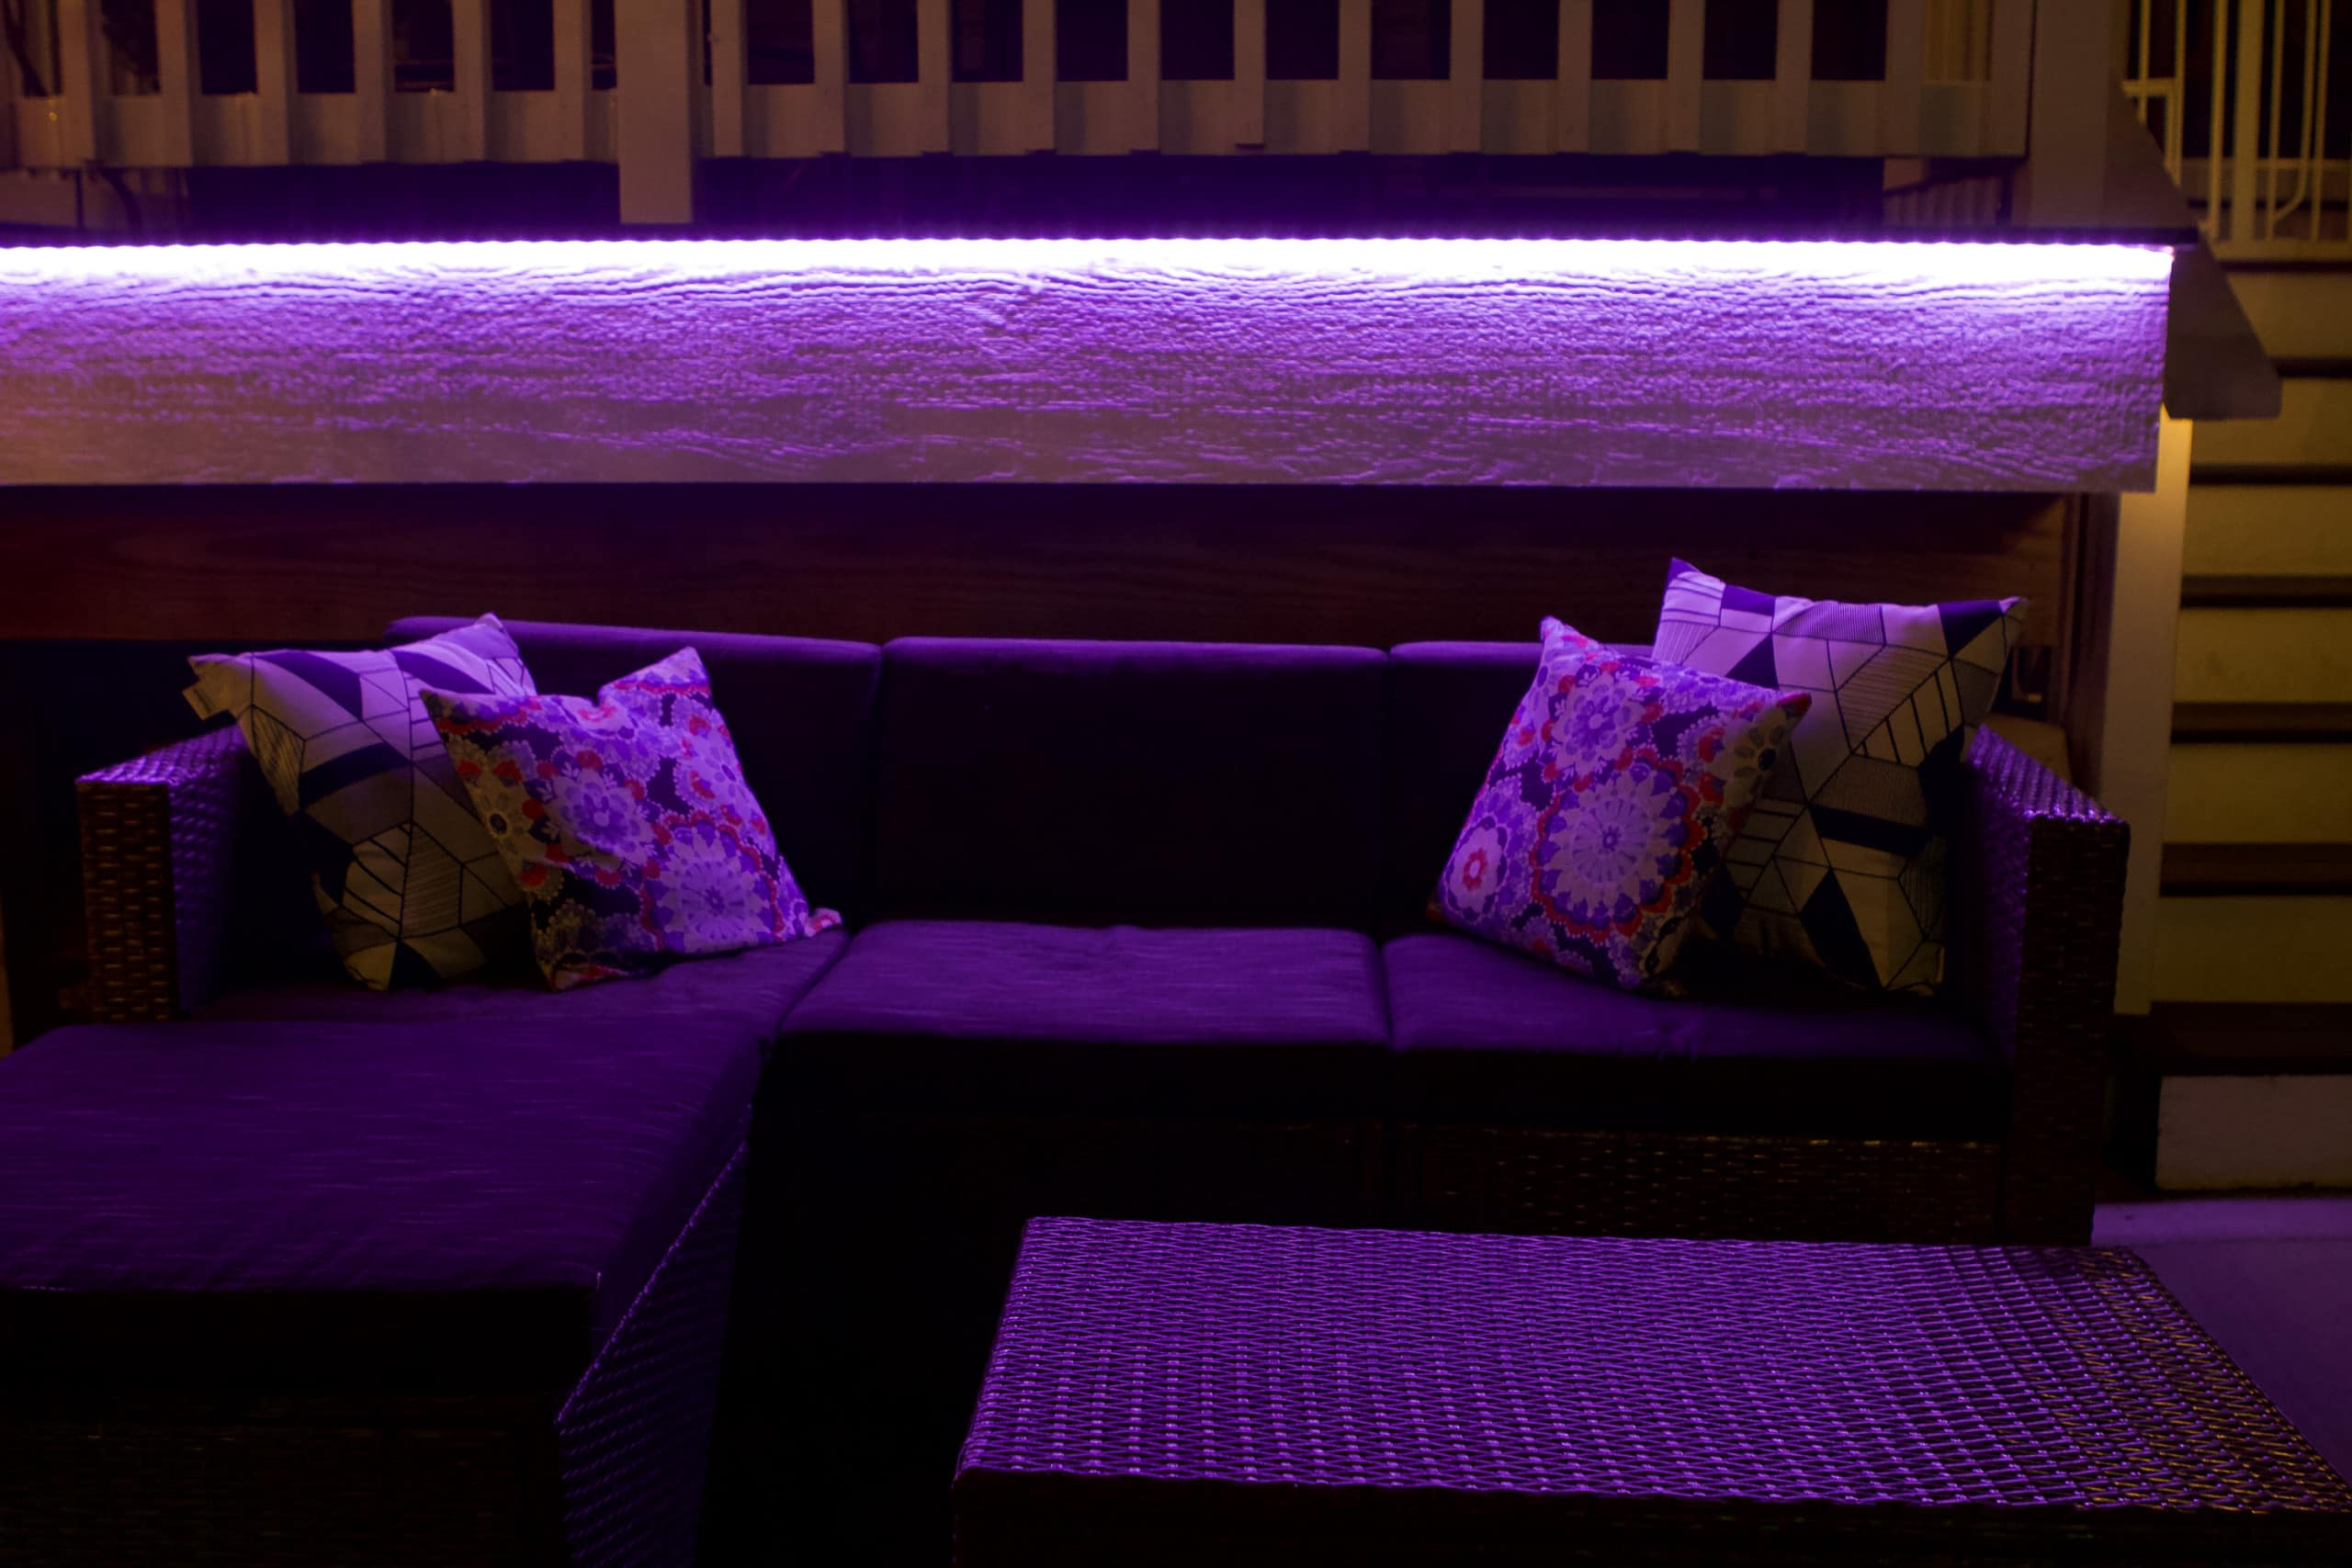 LED Light strips under the deck